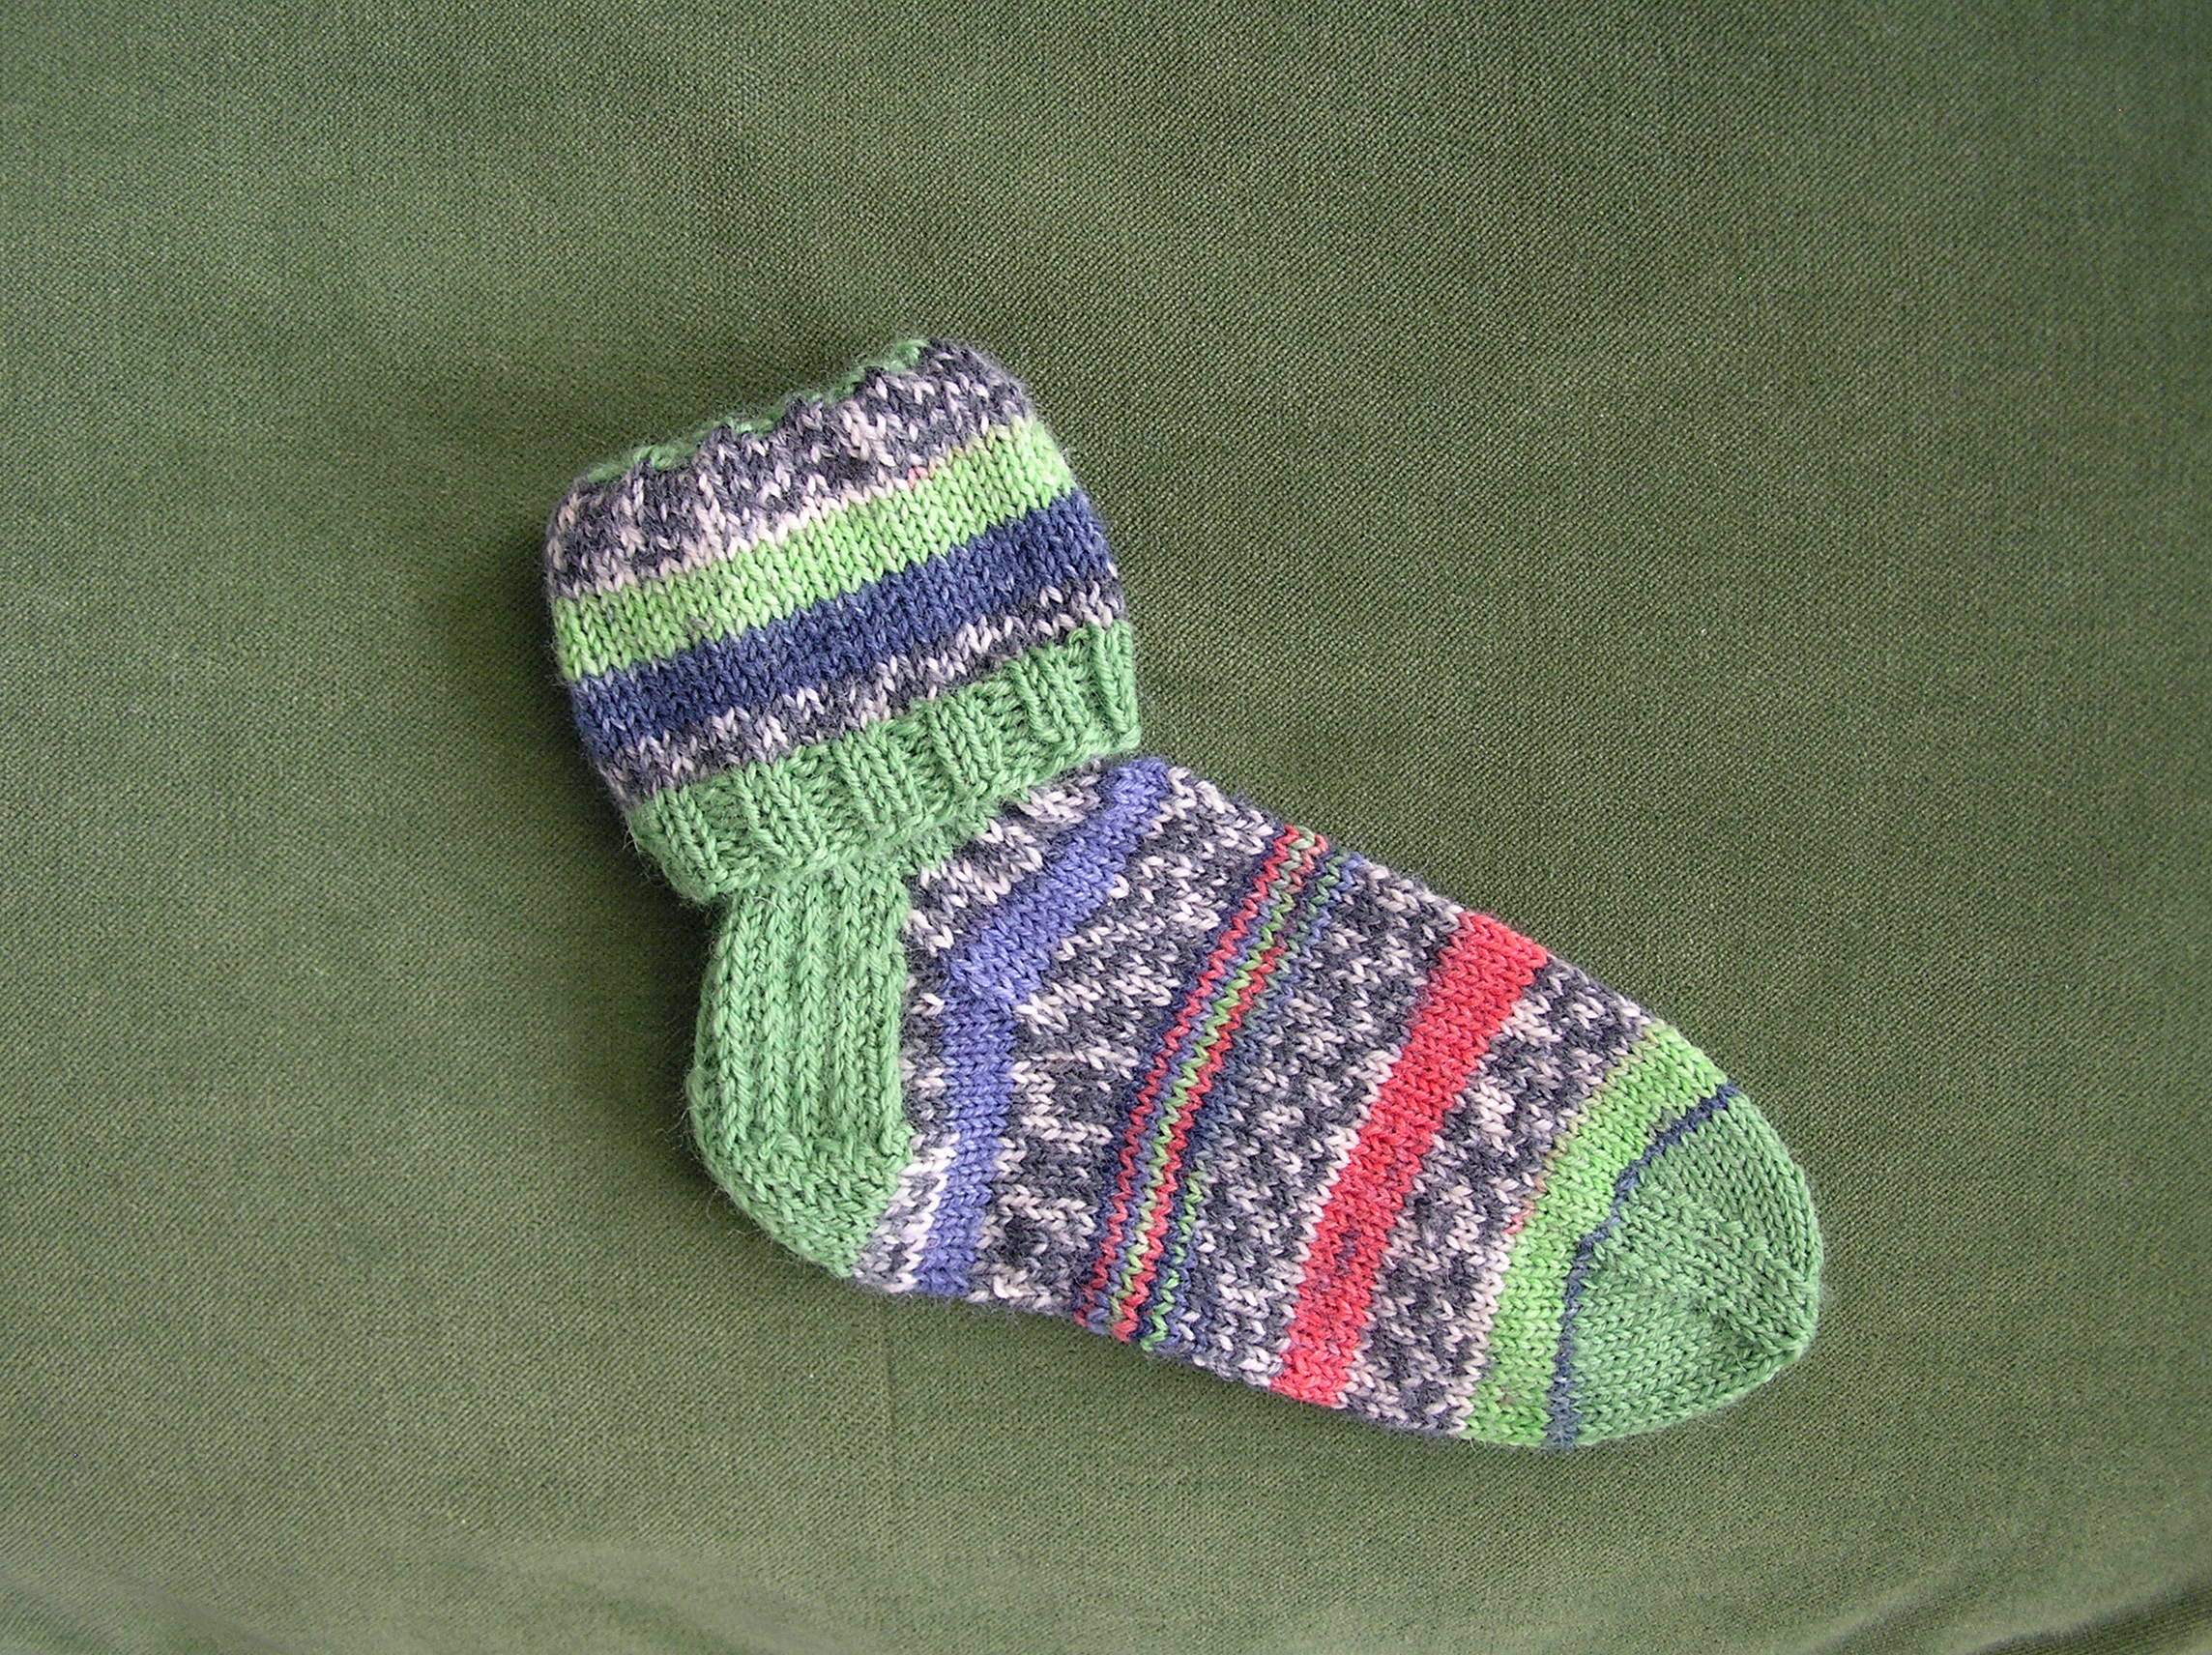 Cuffs socks knitting patter for babies and kids designed by Holli Yeoh